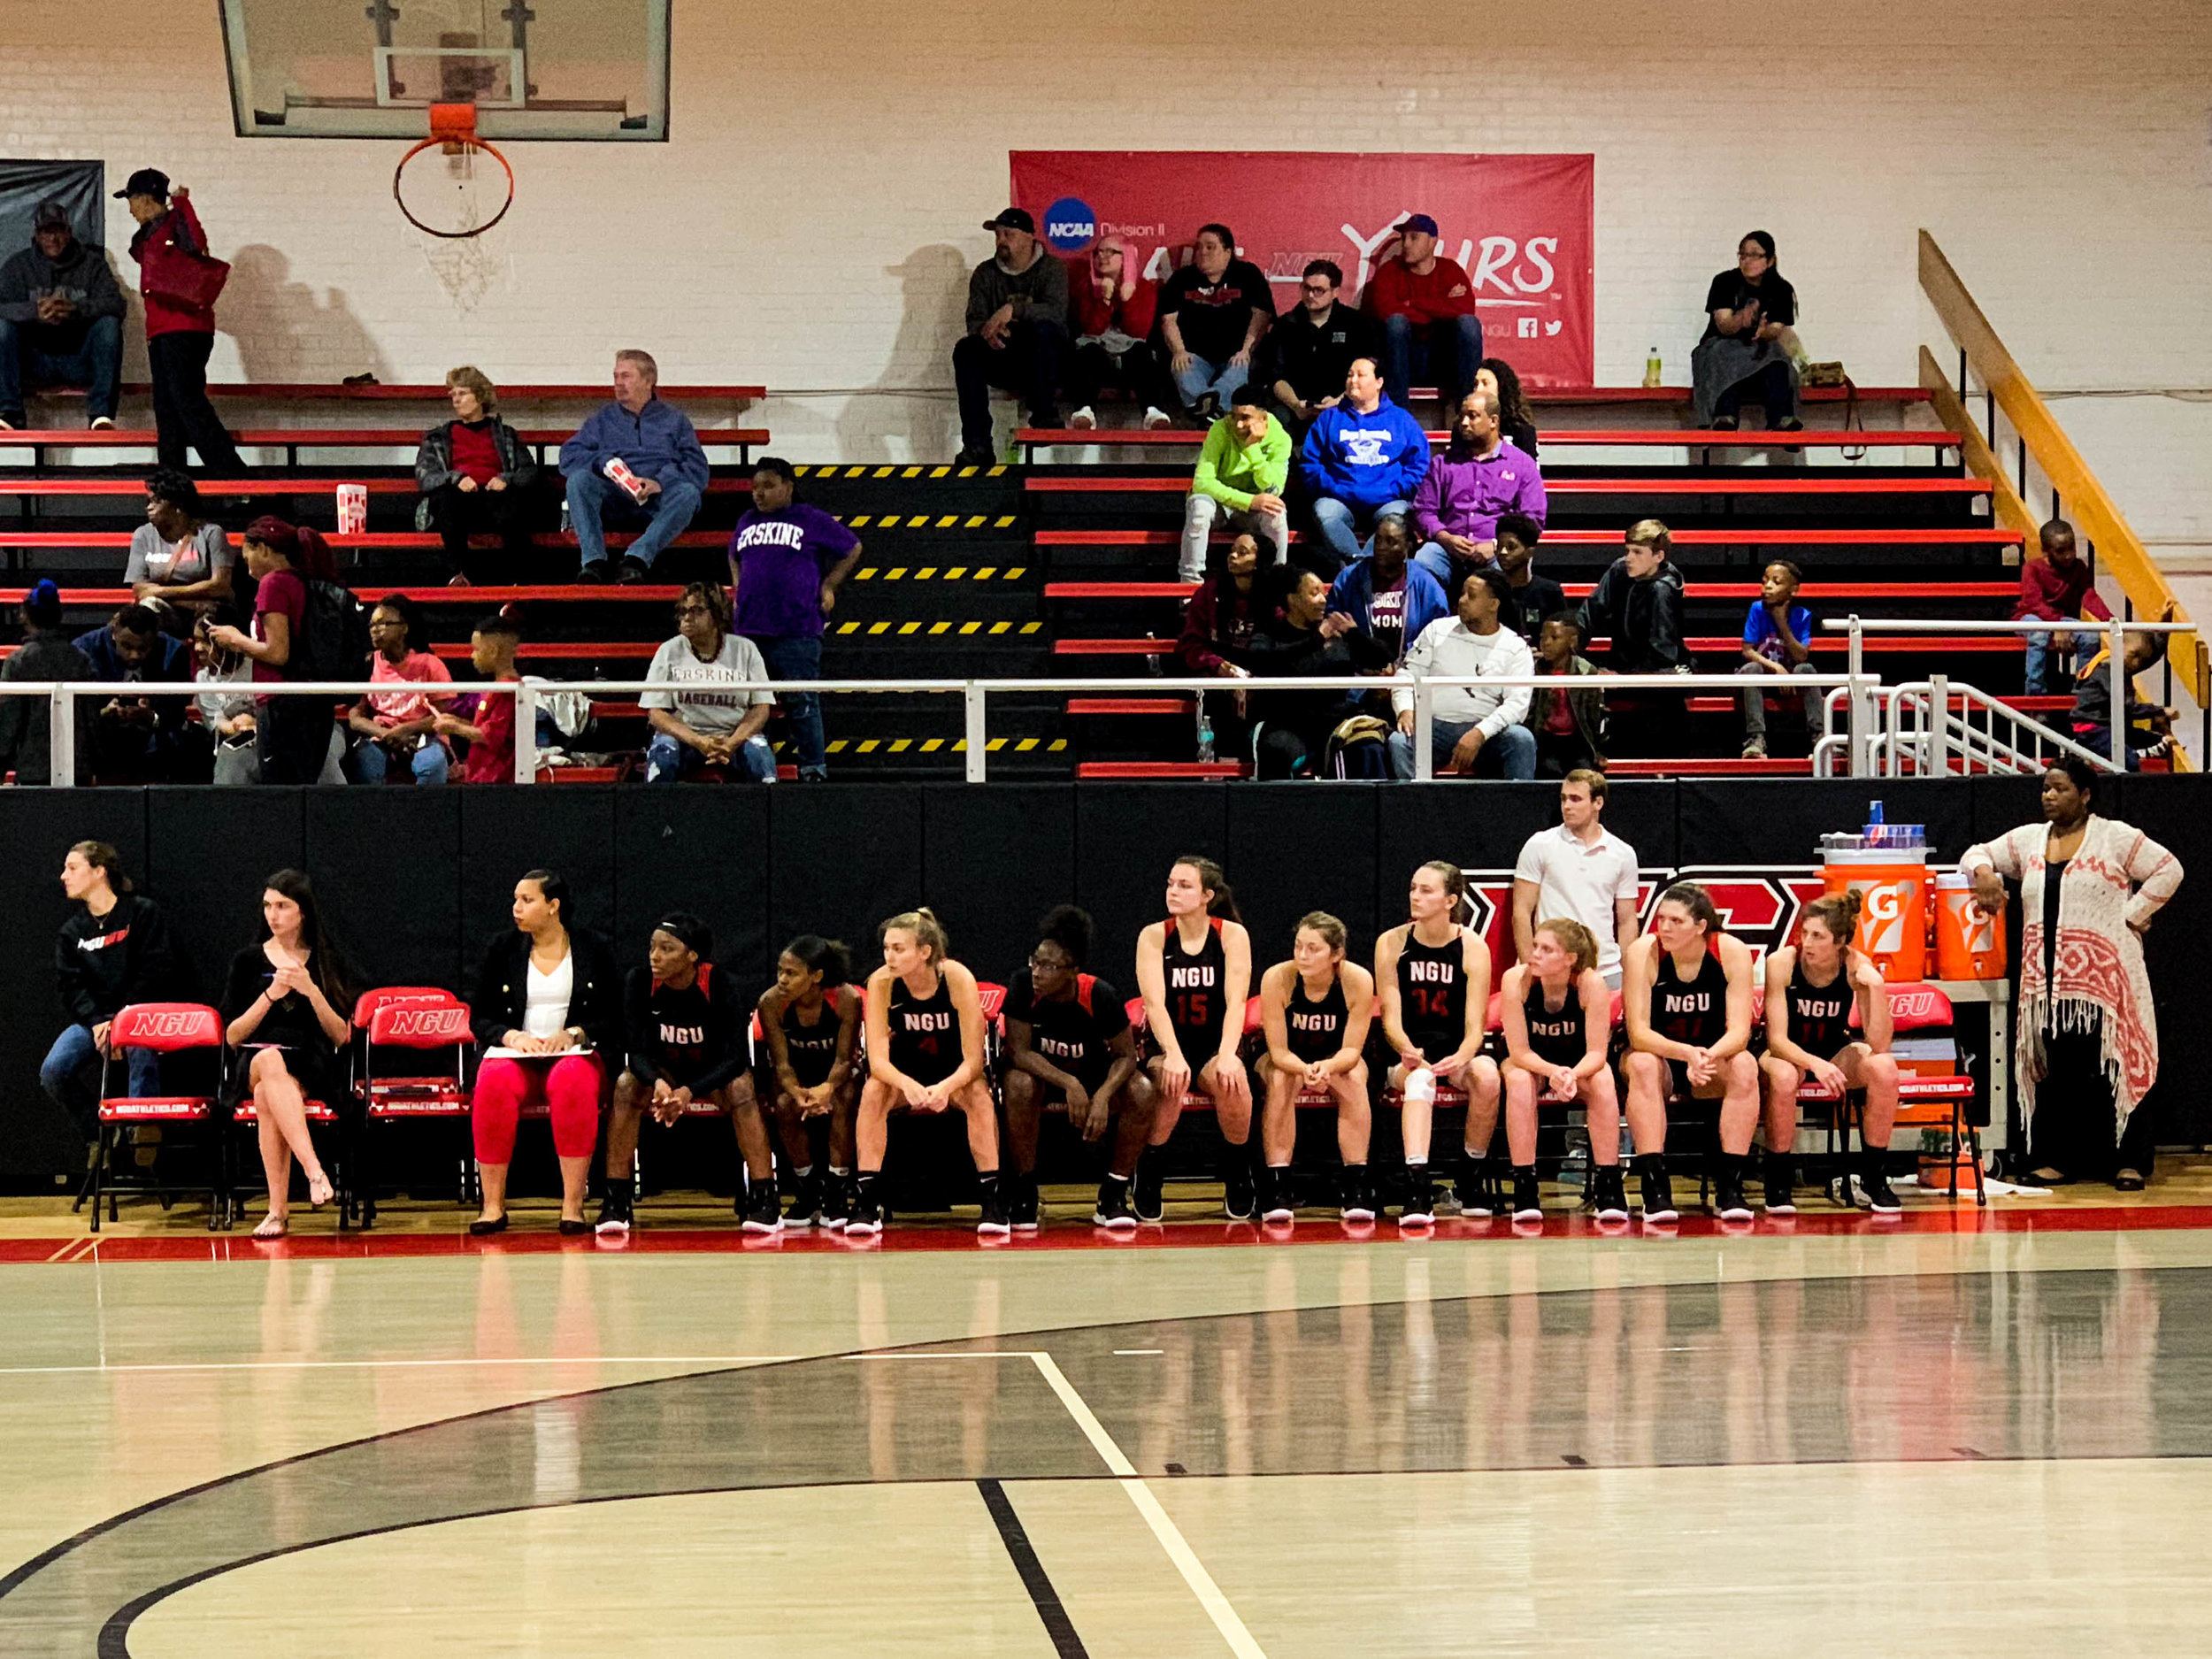 The NGU team watches as its teammates play.